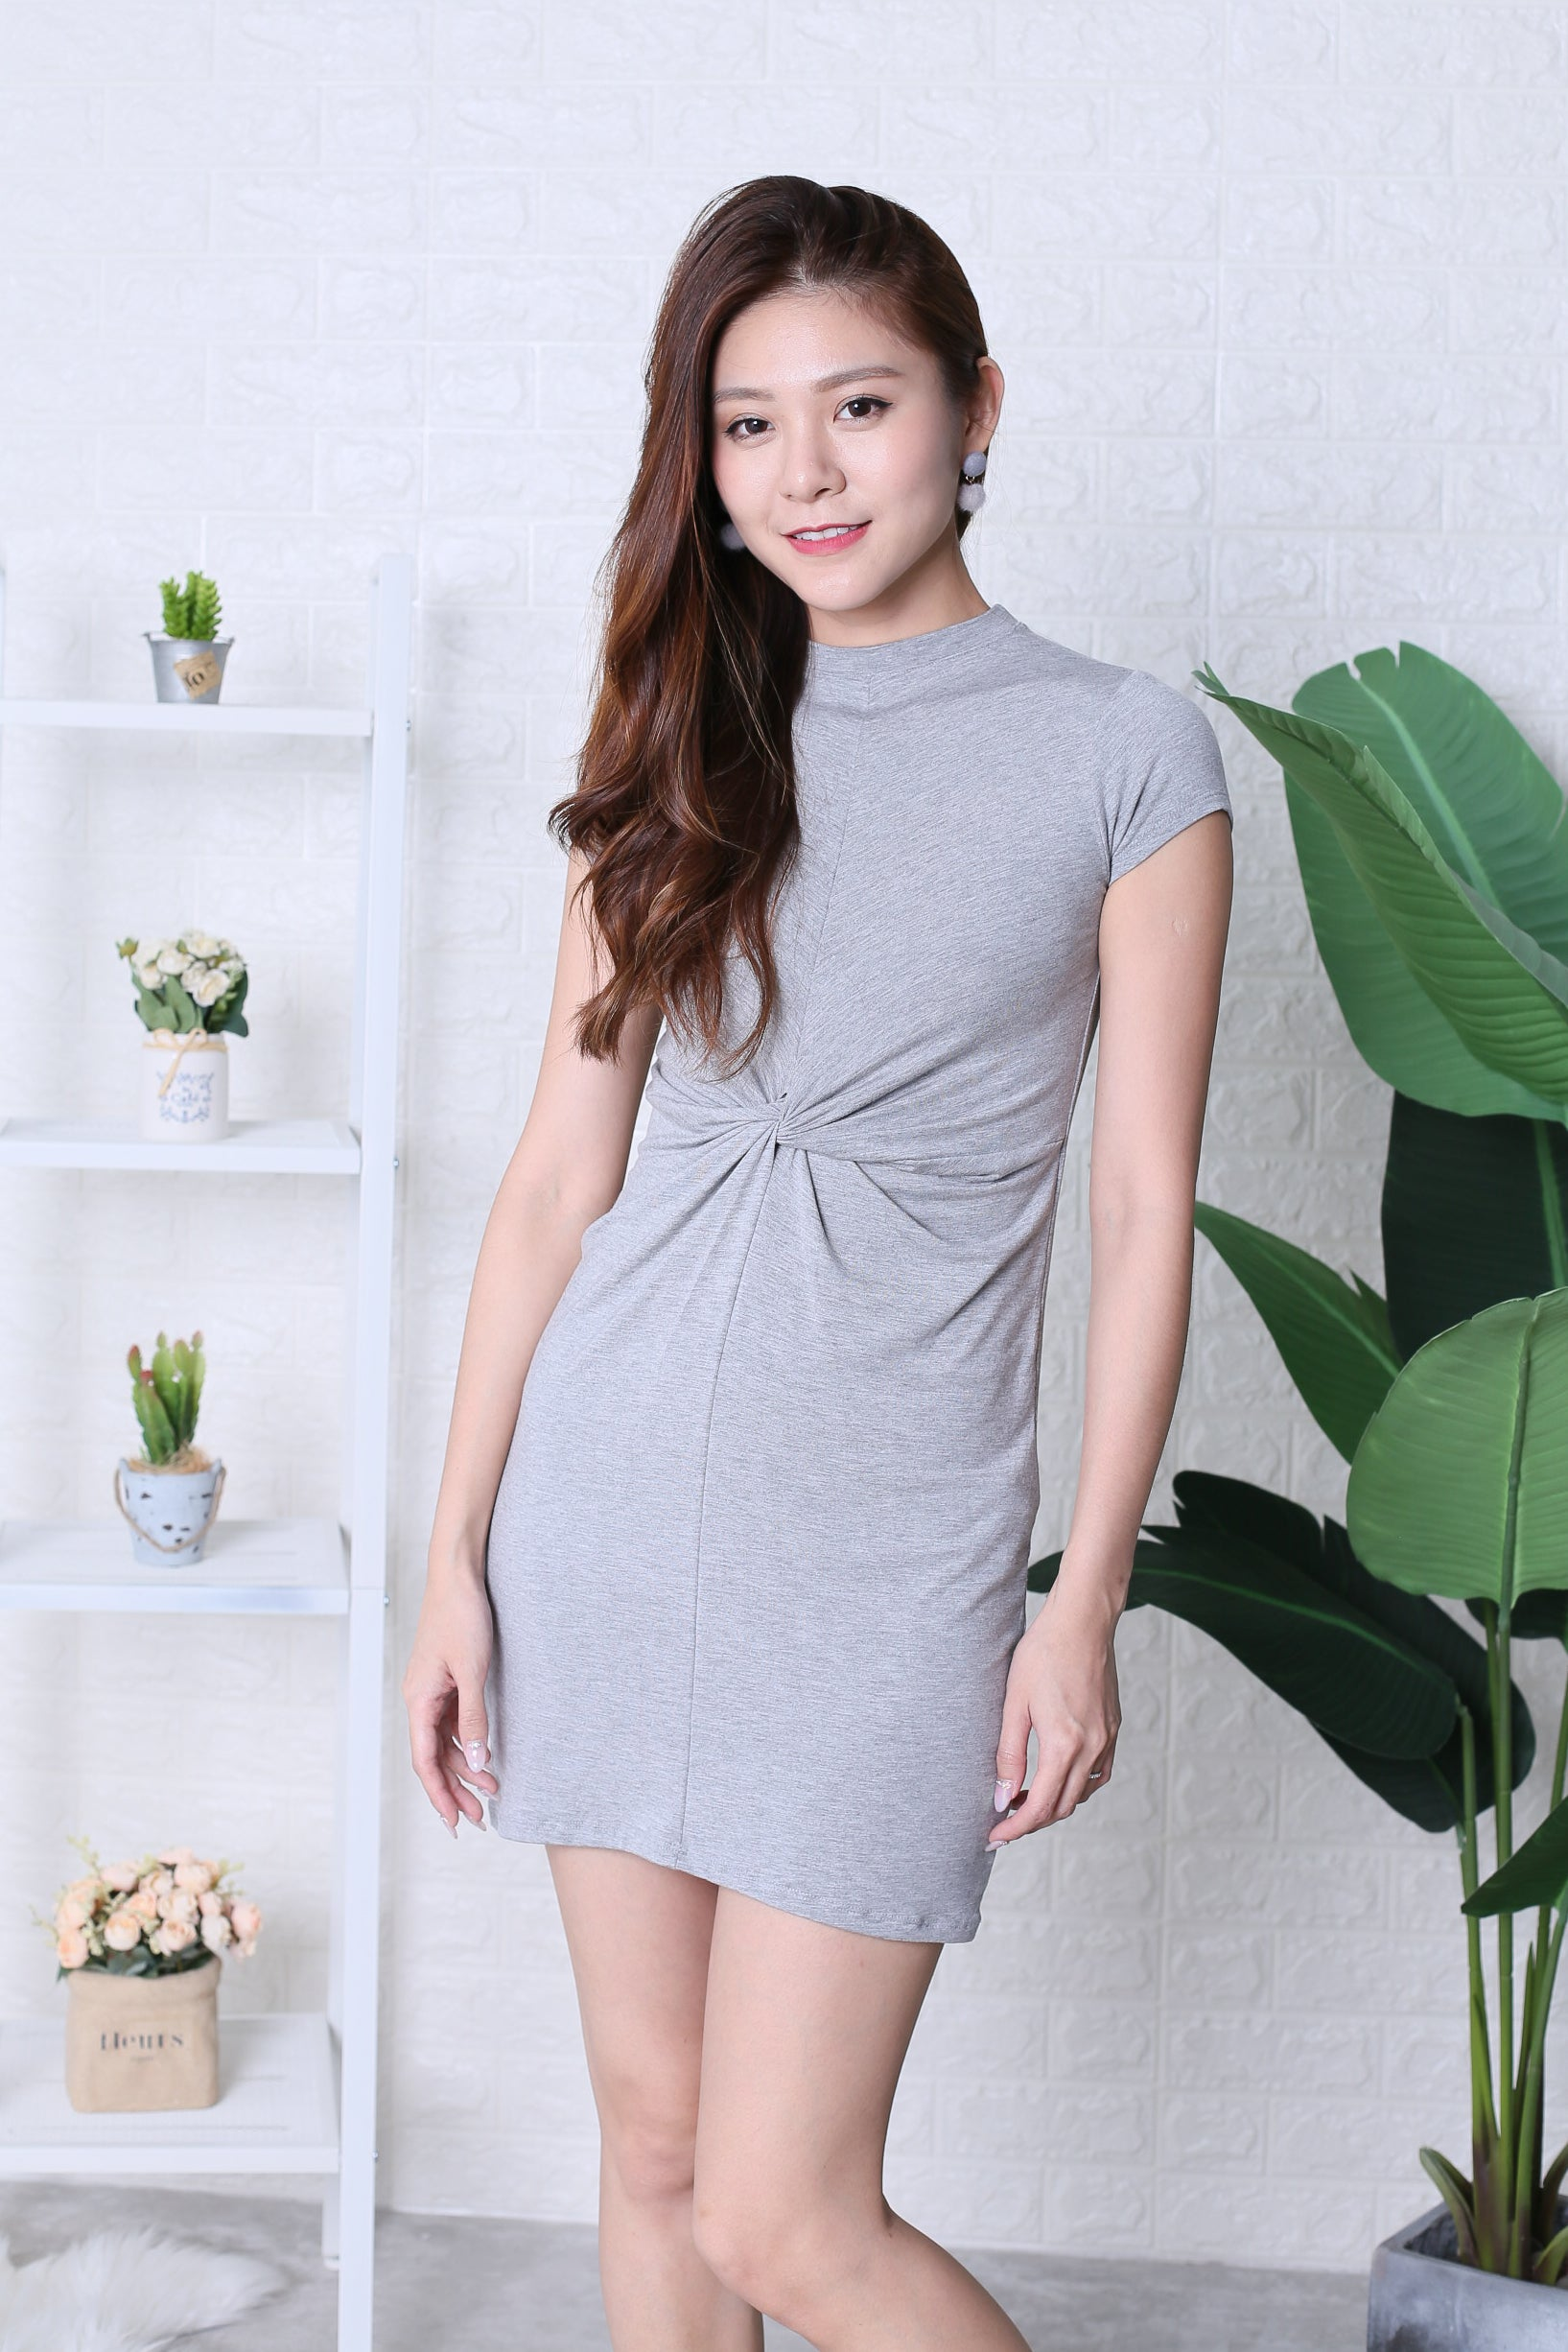 BASIC HIGH NECK KNOTTED TEE DRESS IN LIGHT GREY